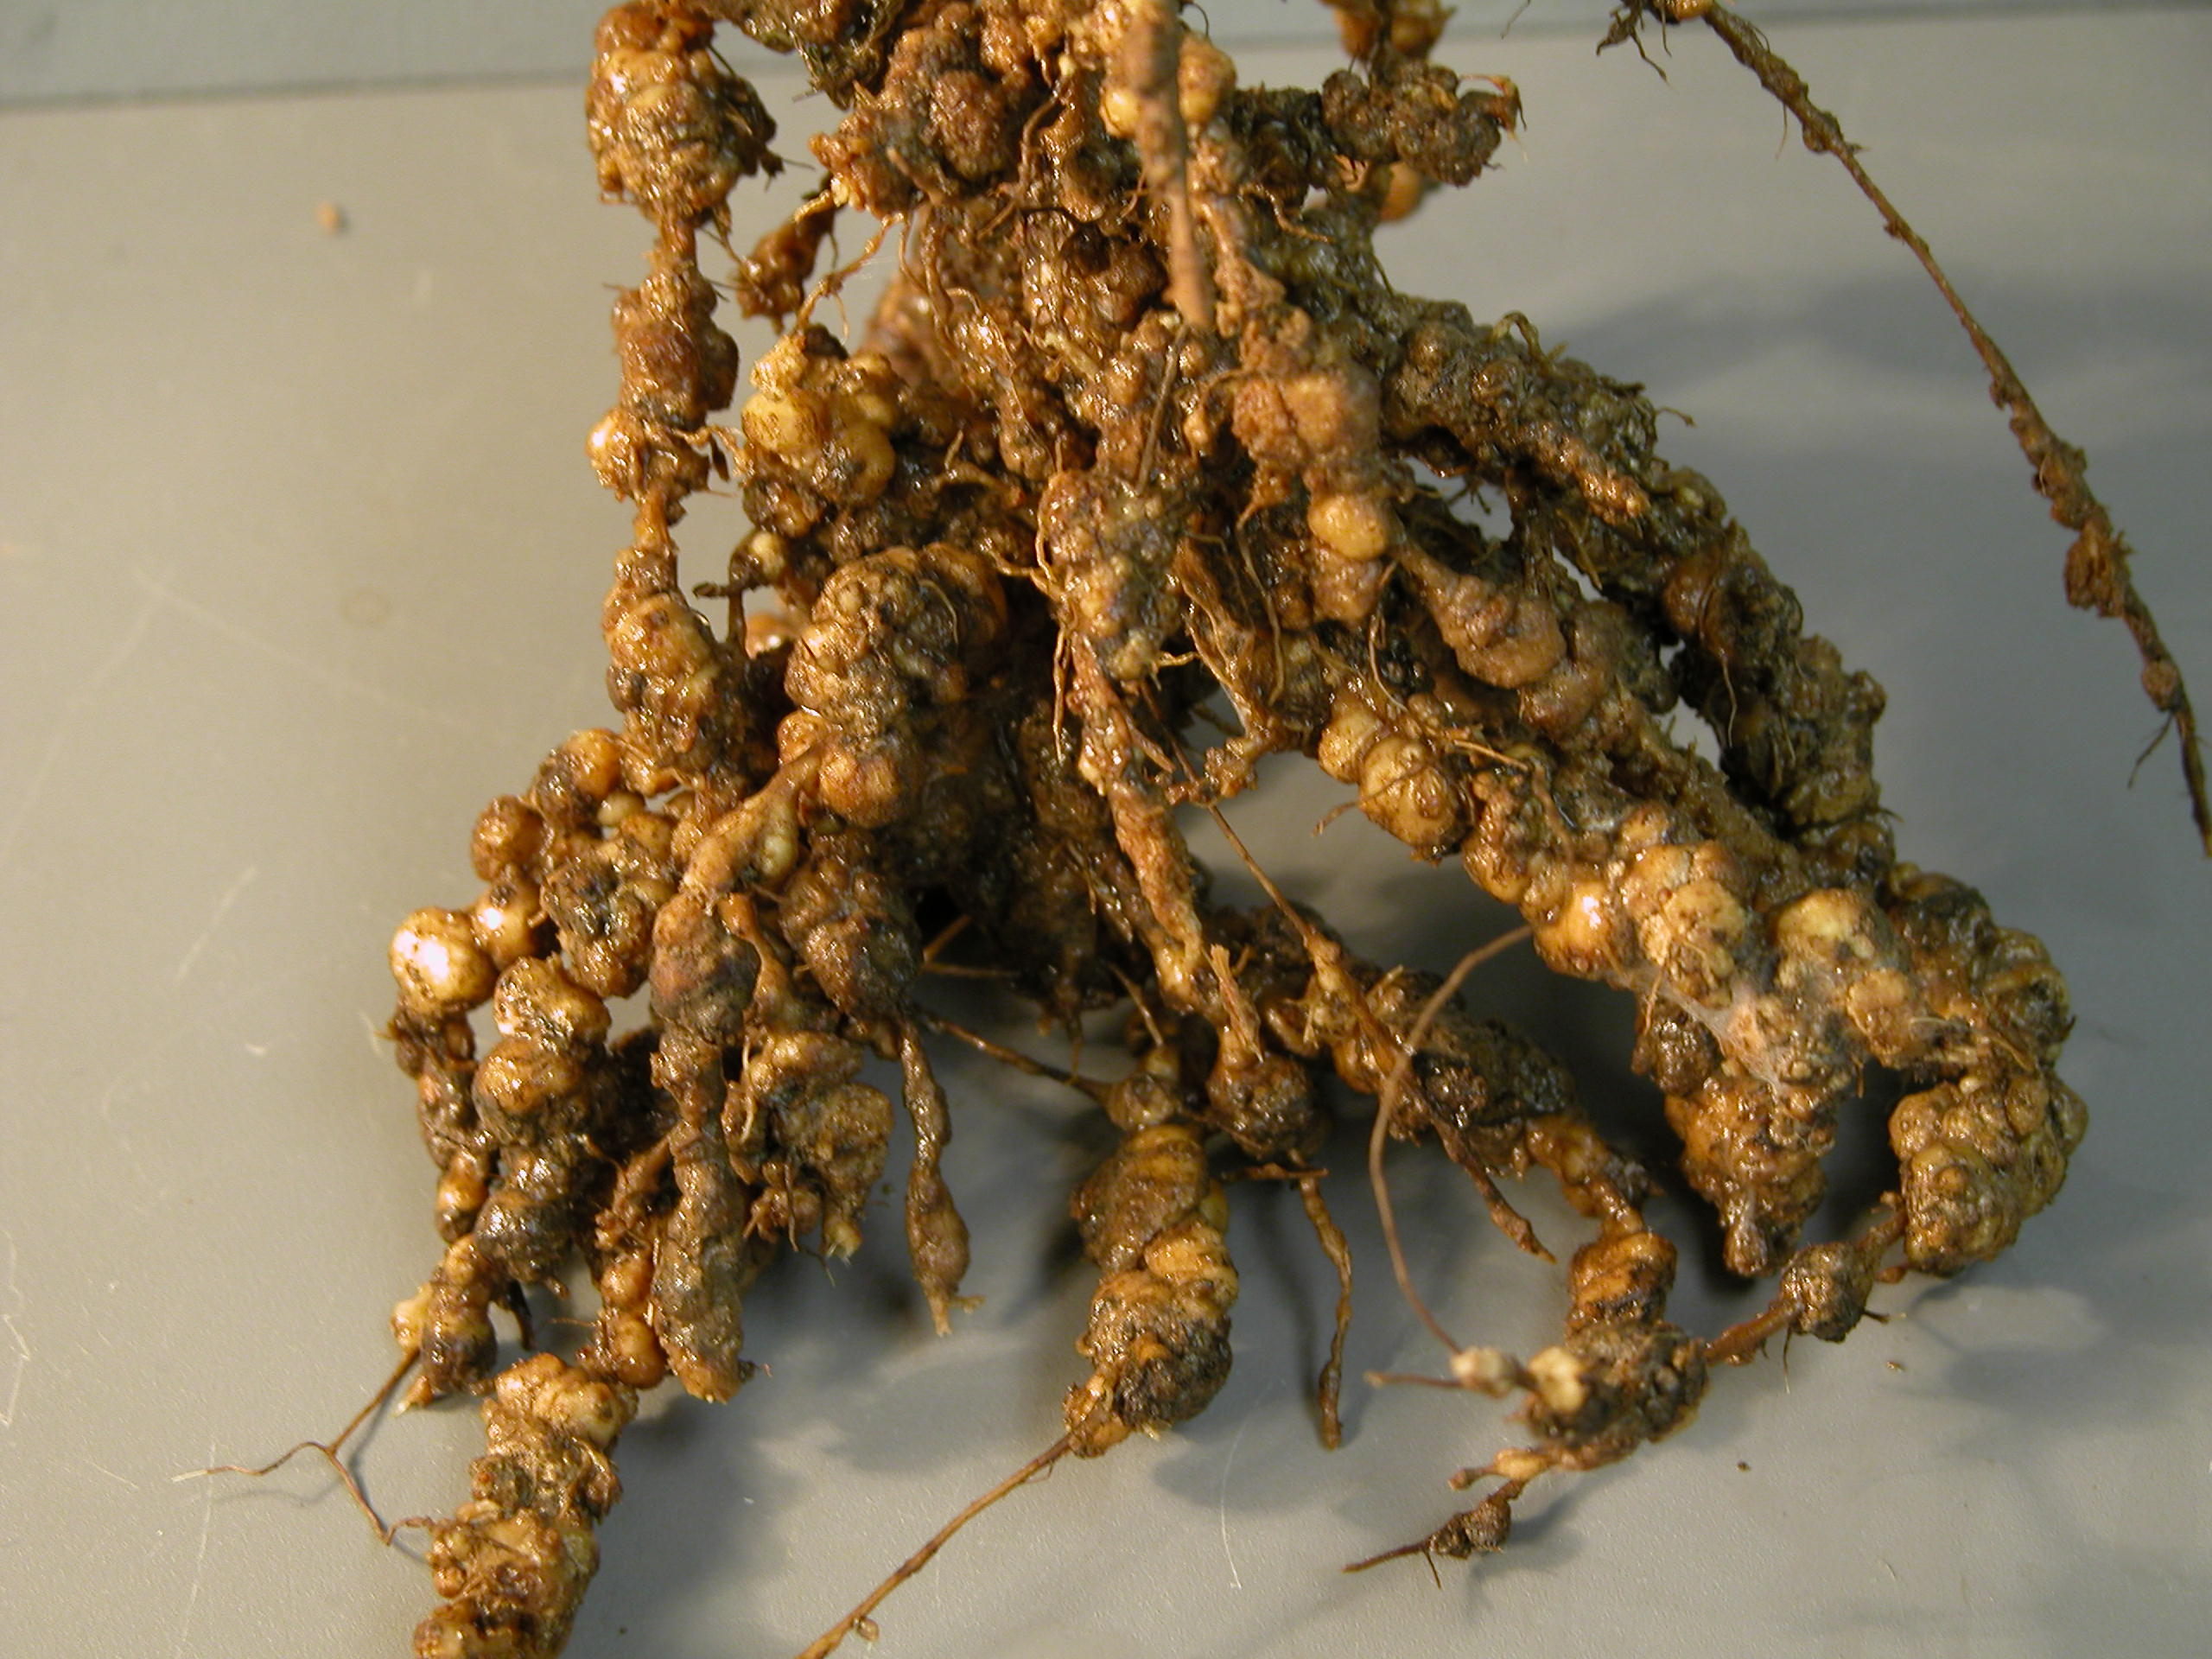 Damage to soybeans by nematodes.